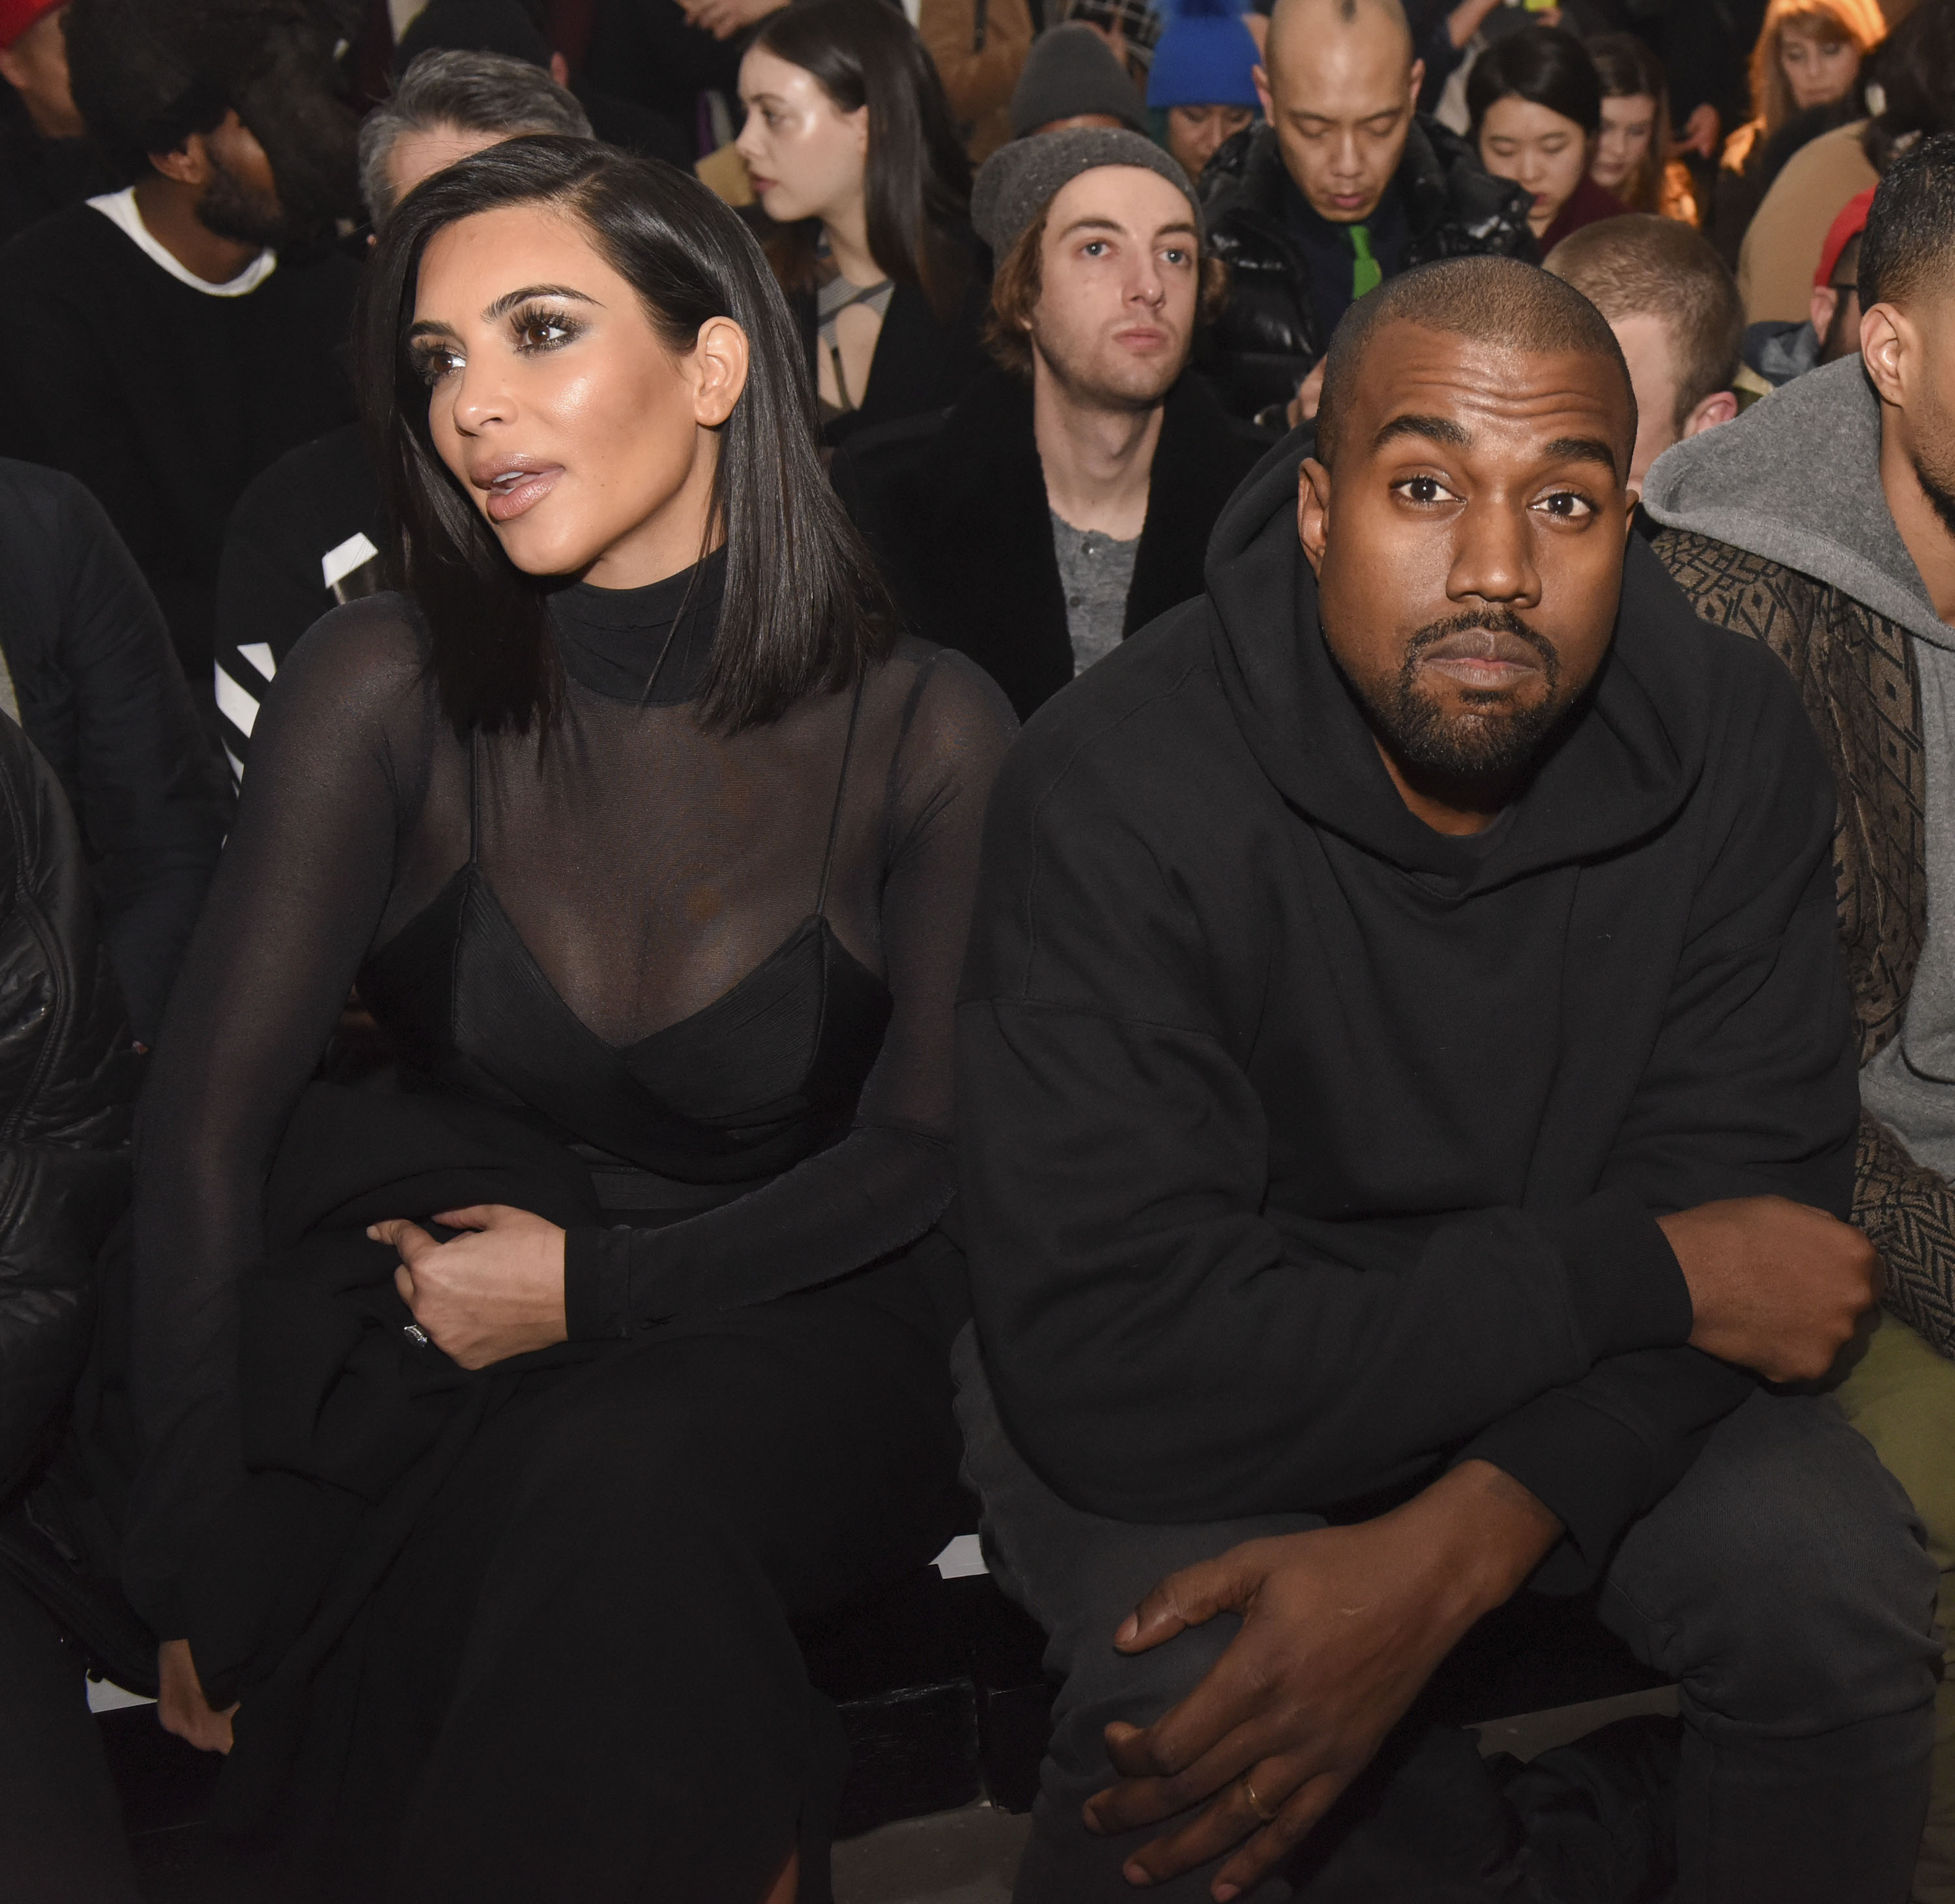 Kim Kardashian and Kanye West attend the Robert Geller show during Mercedes-Benz Fashion Week Fall 2015 at Pier 59 on Feb. 14, 2015 in New York City.